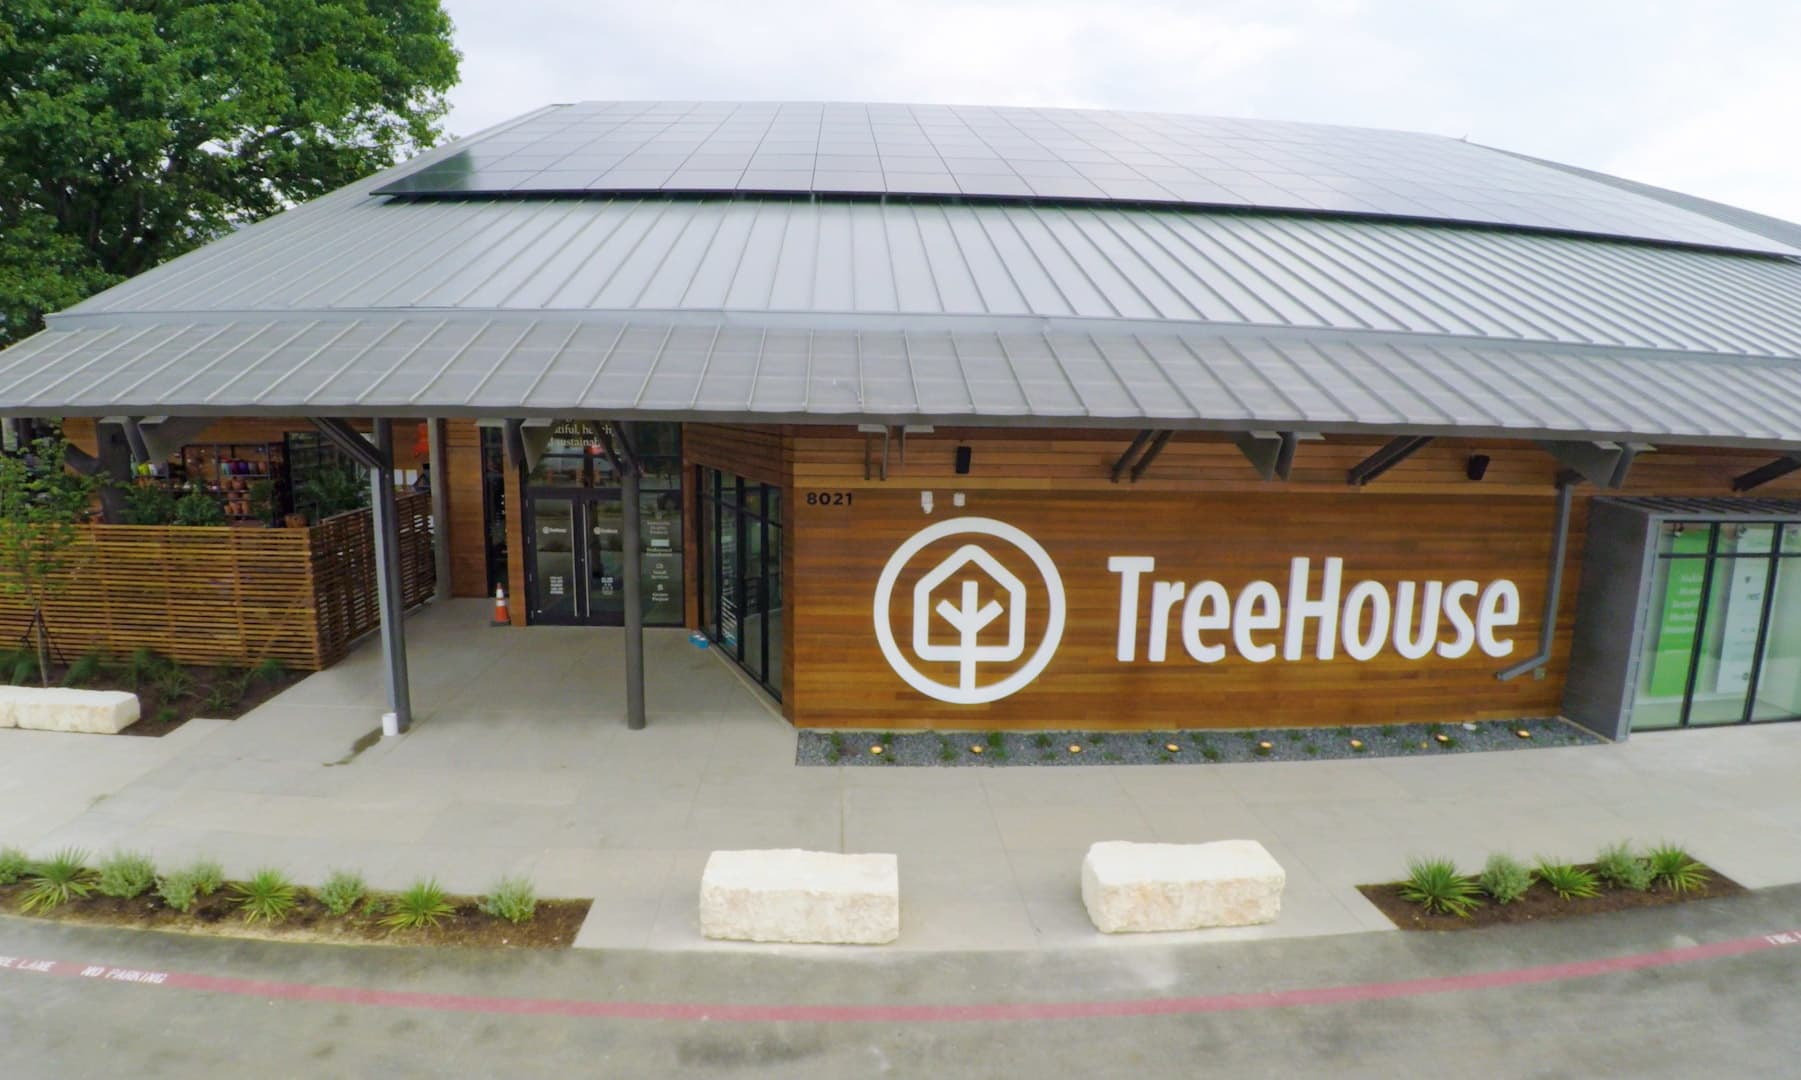 TreeHouse moves to be 'ground zero' in consumers' journey to improve their homes